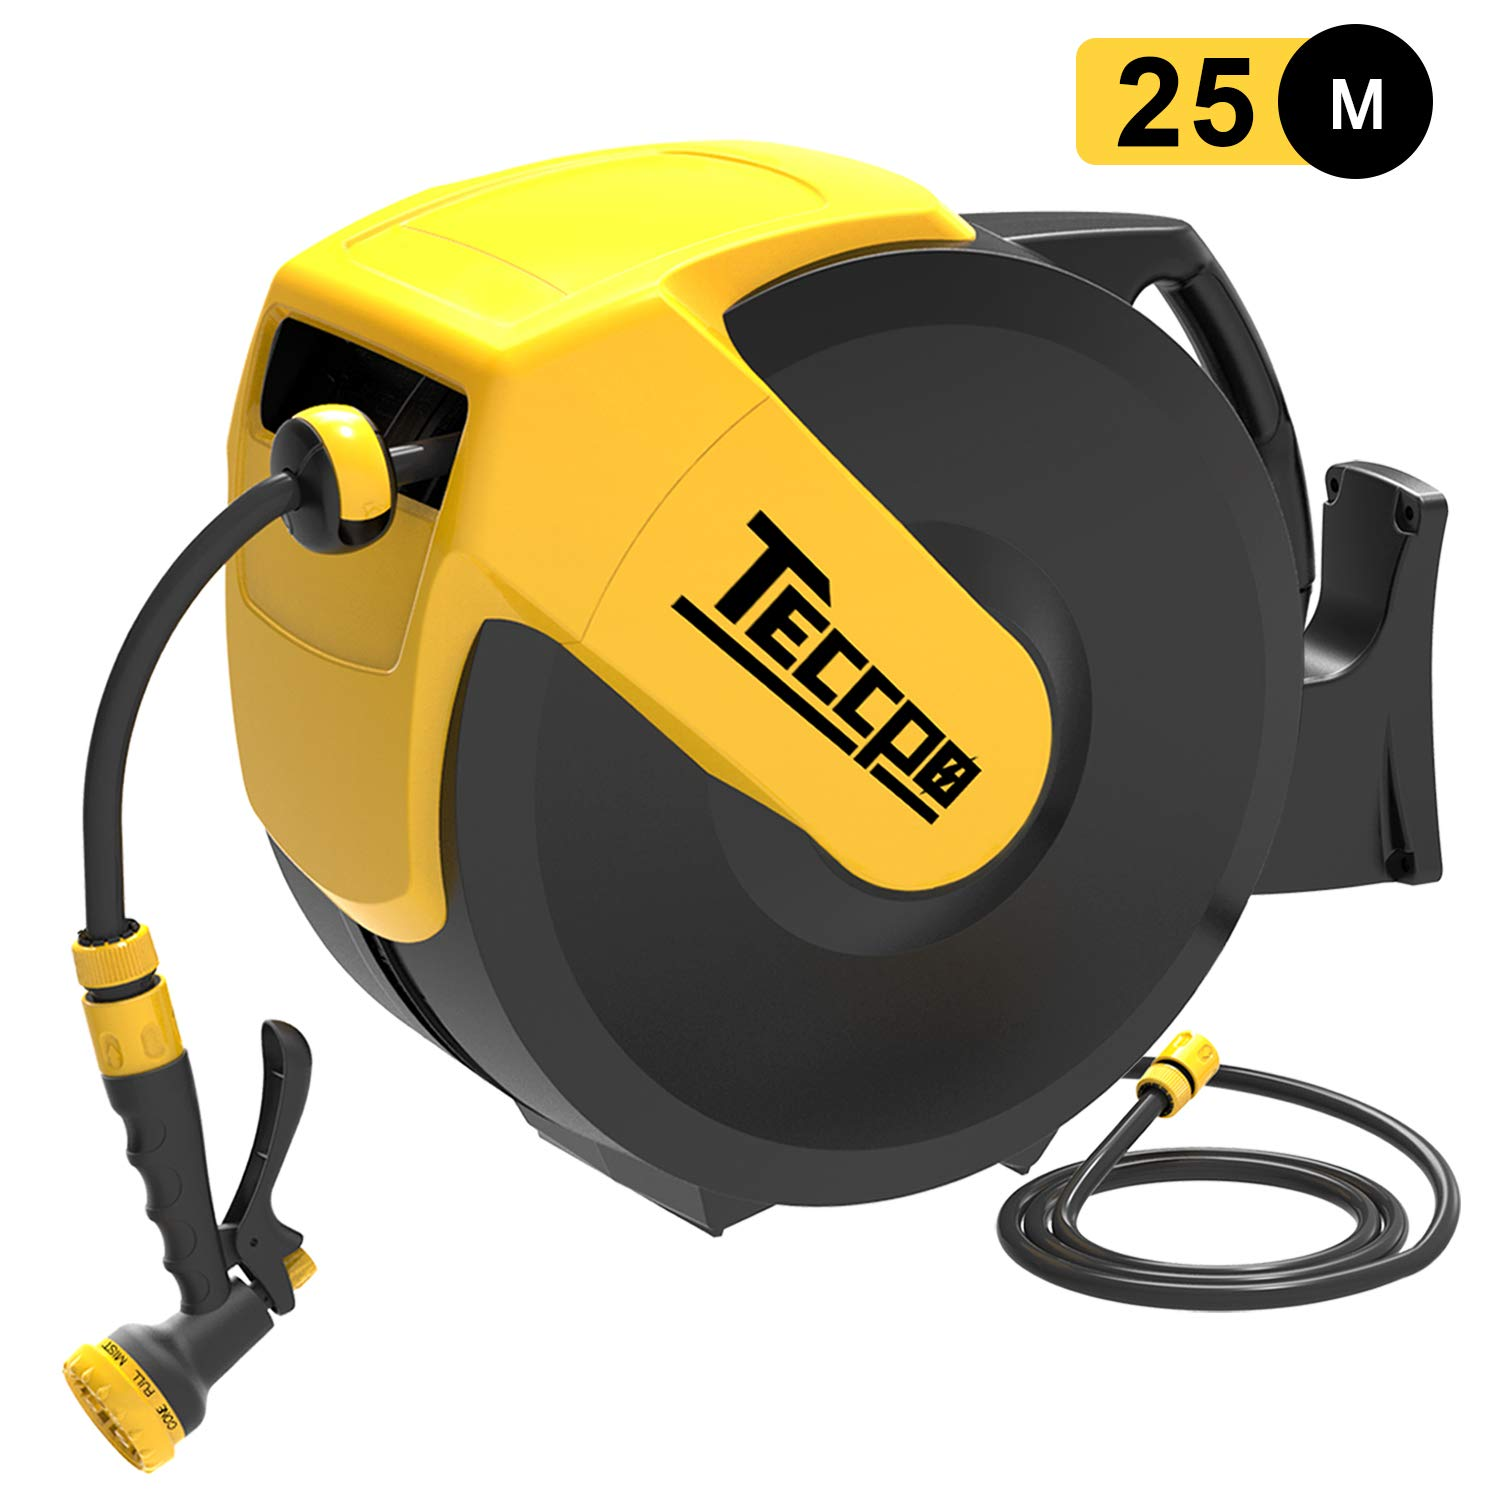 Any Length Lock Wall-Mounted Hose Reel Rotating 180° -TAR001G 25m TECCPO Hose Reel 2m Auto Reel Safe and Slow Retraction with 7 Modes Hose Spray Gun